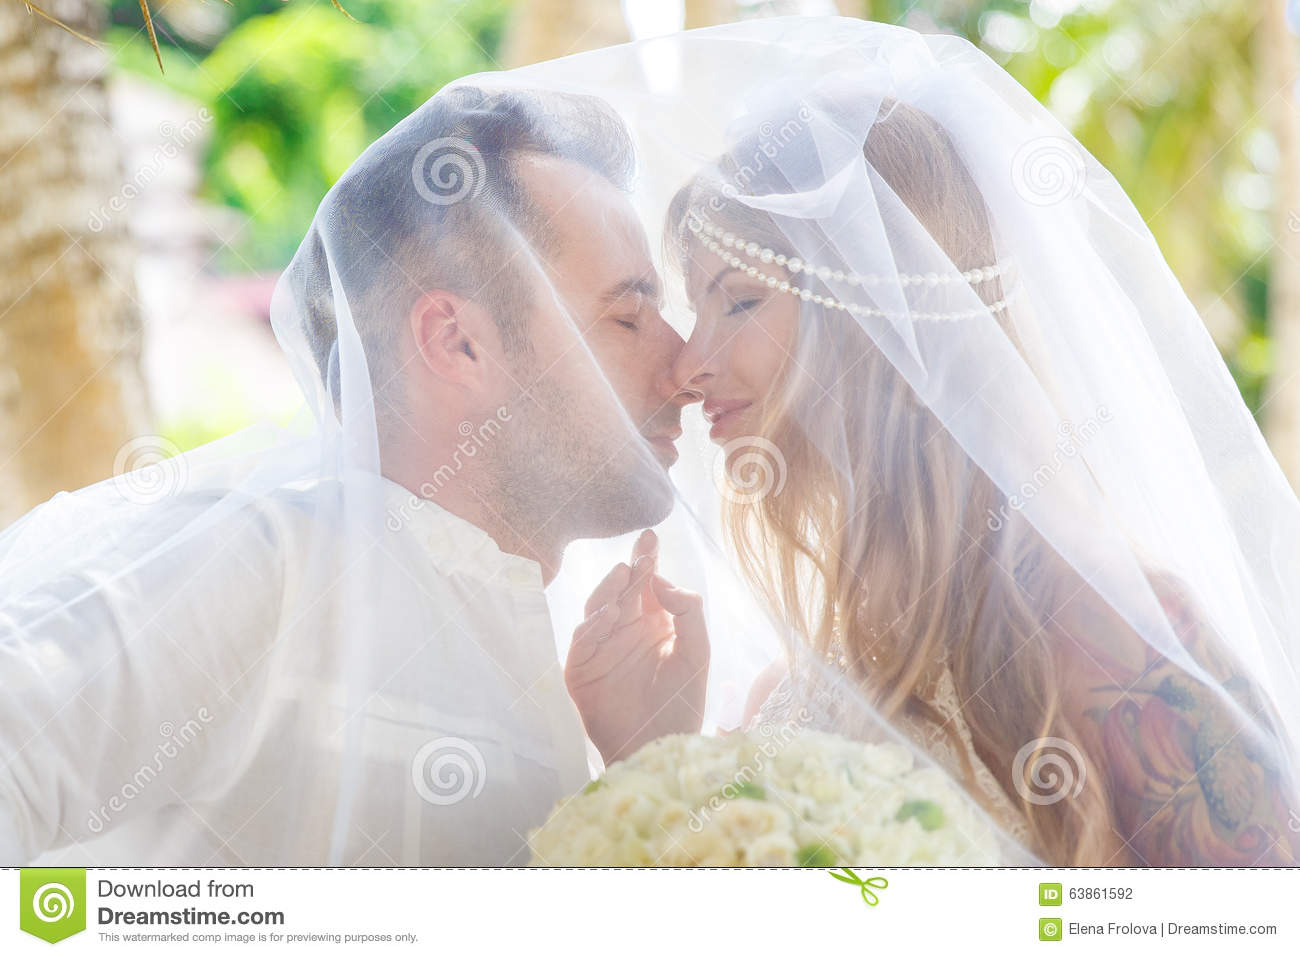 Beautiful young bride in the veil, with wedding bouquet of white